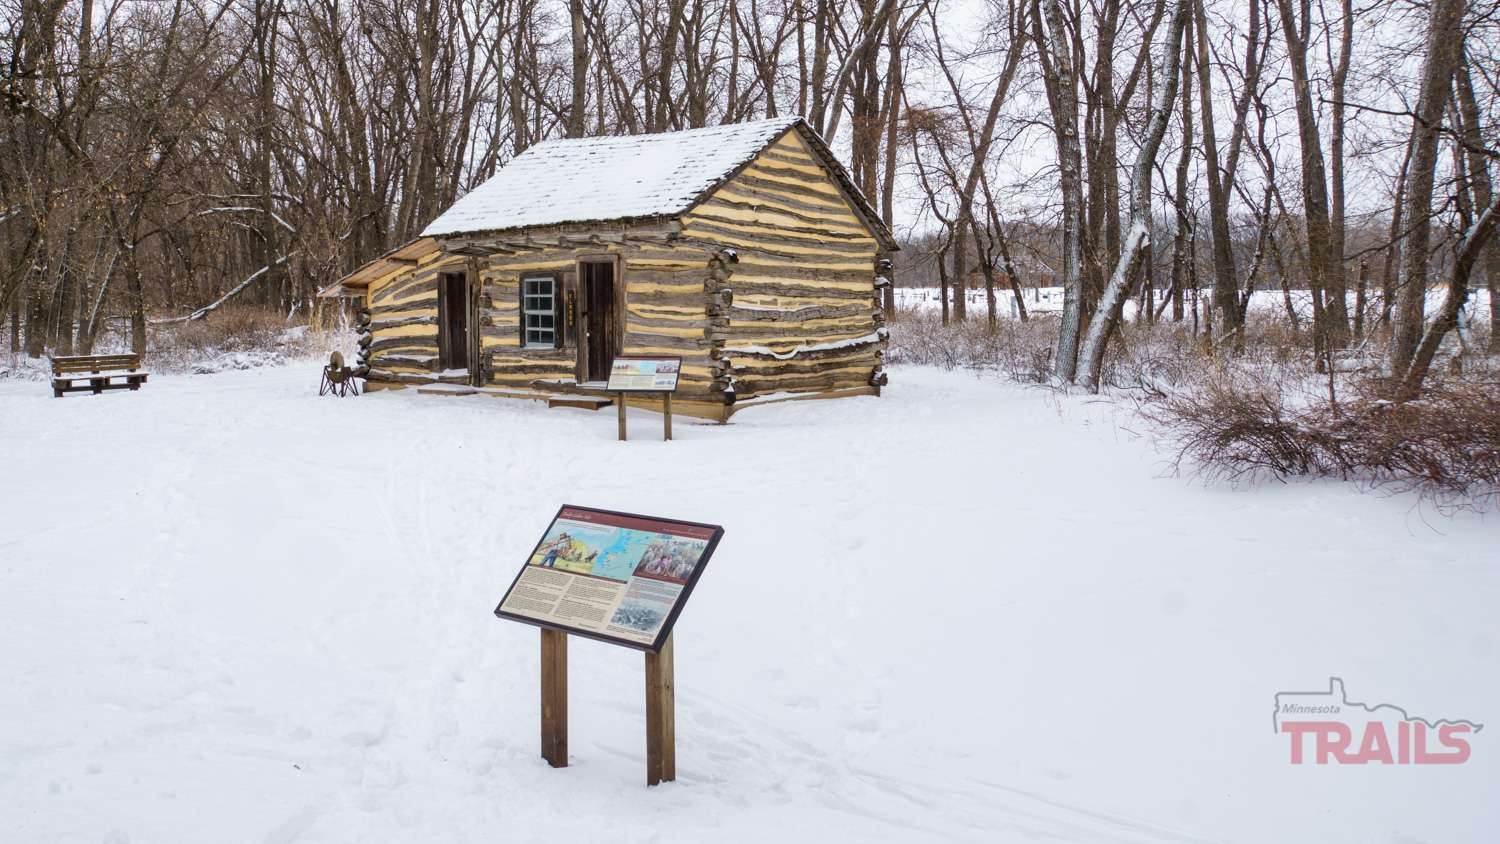 An early settler's cabin in the snow